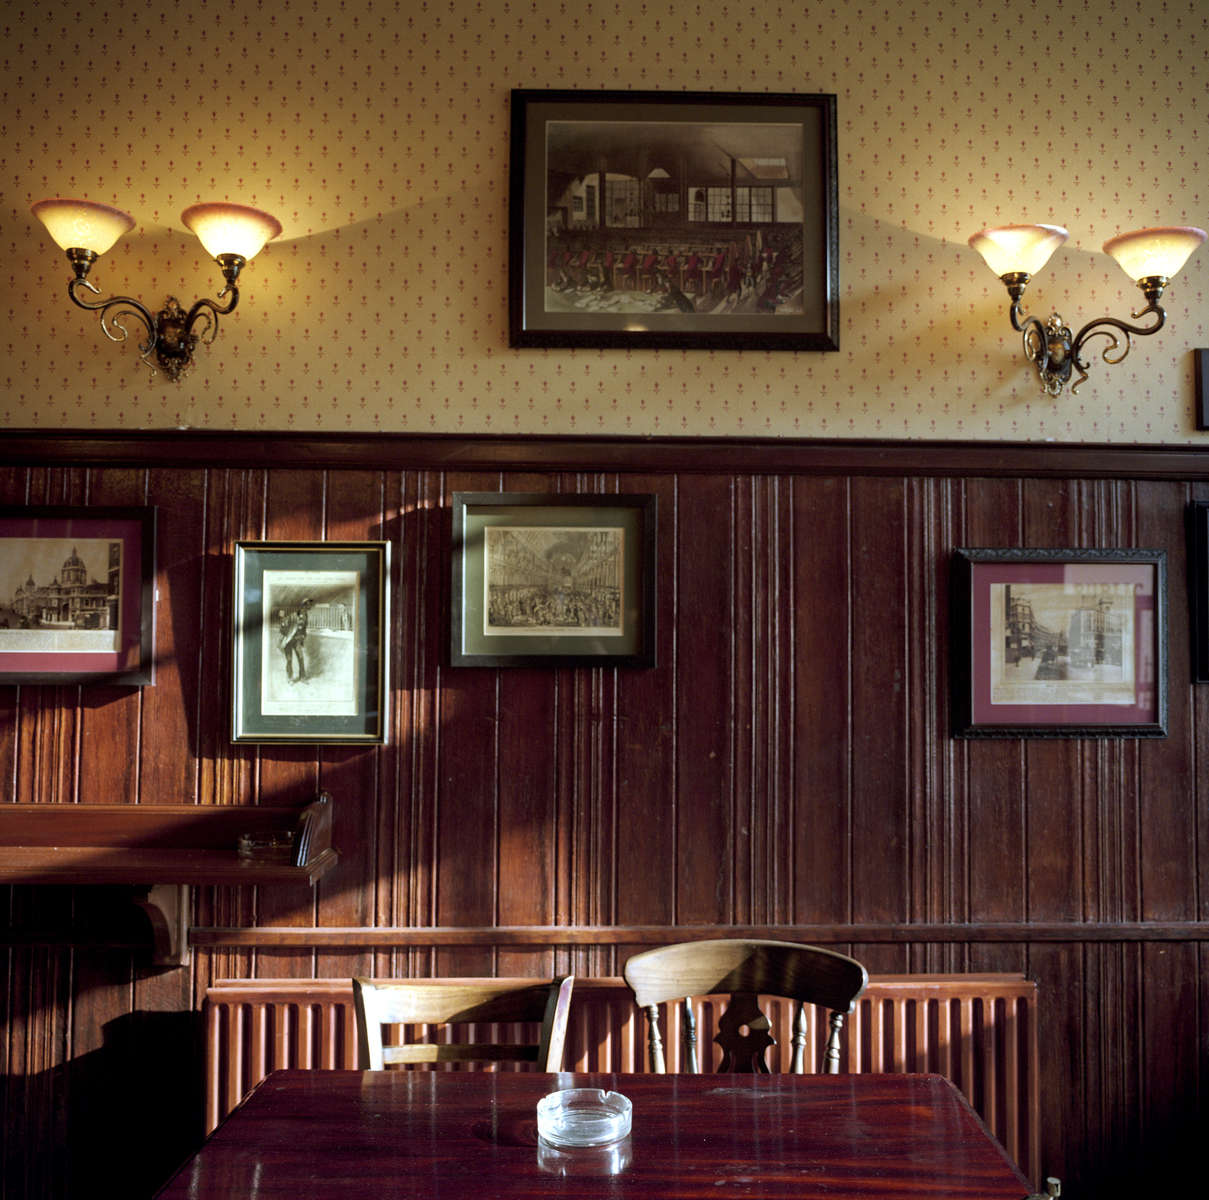 The back room of the Penny Black pub, London, popular with postal workers from the nearby Mount Pleasant Mail Centre. March 2001